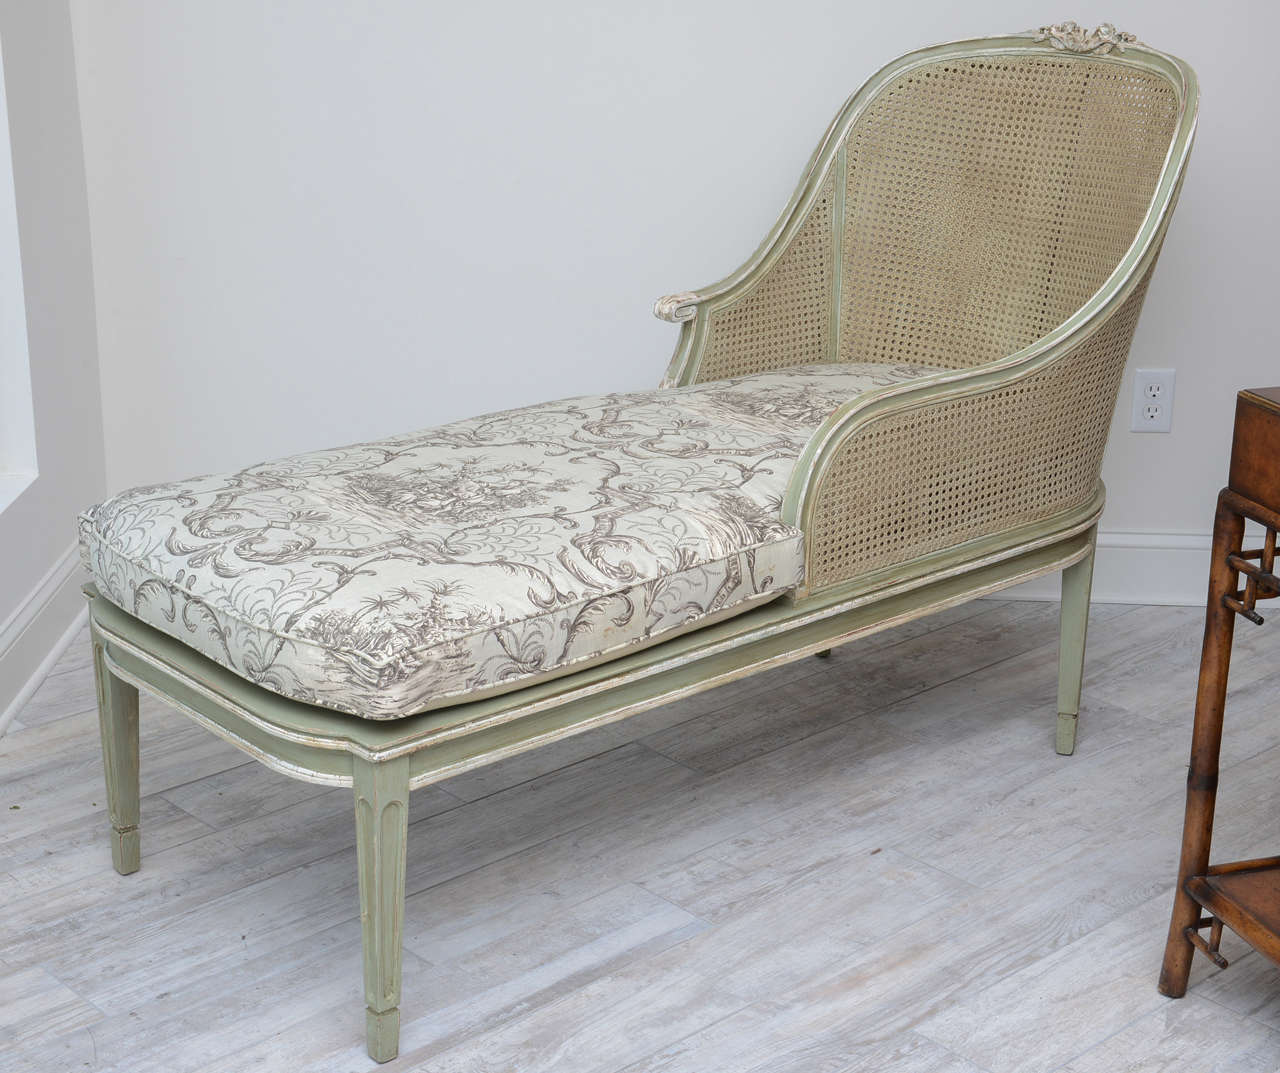 Louis xvi style french caned chaise lounge at 1stdibs - Chaises louis 16 ...